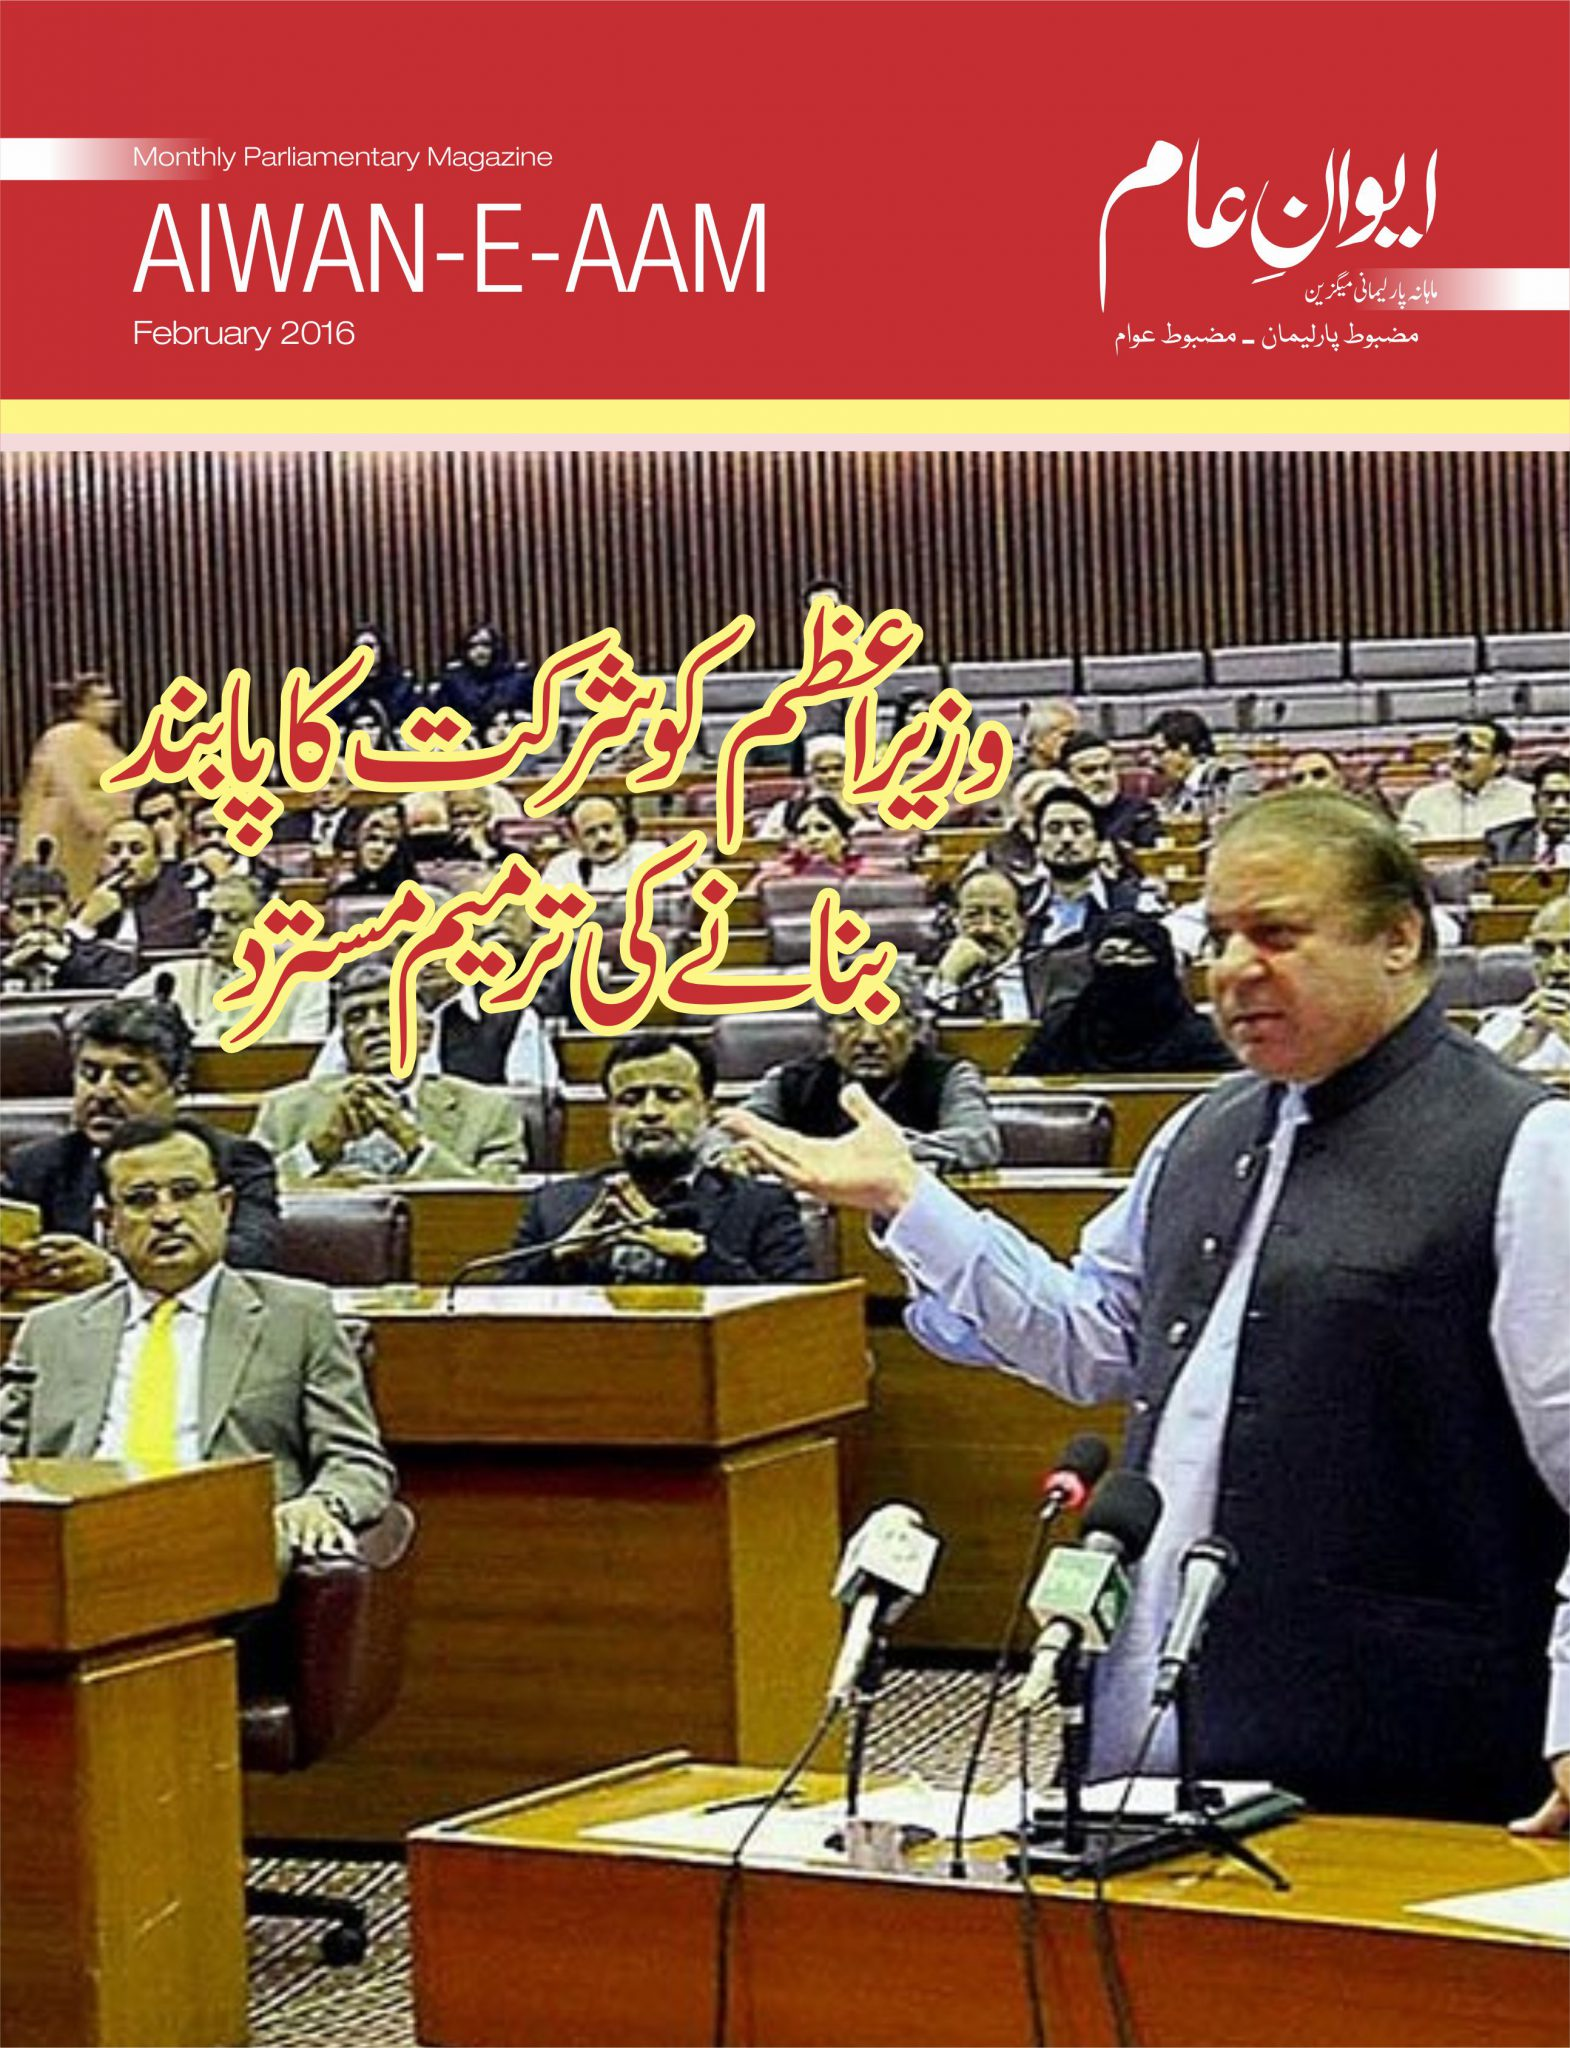 Monthly Magazine Aiwan-e-Aam – February 2016